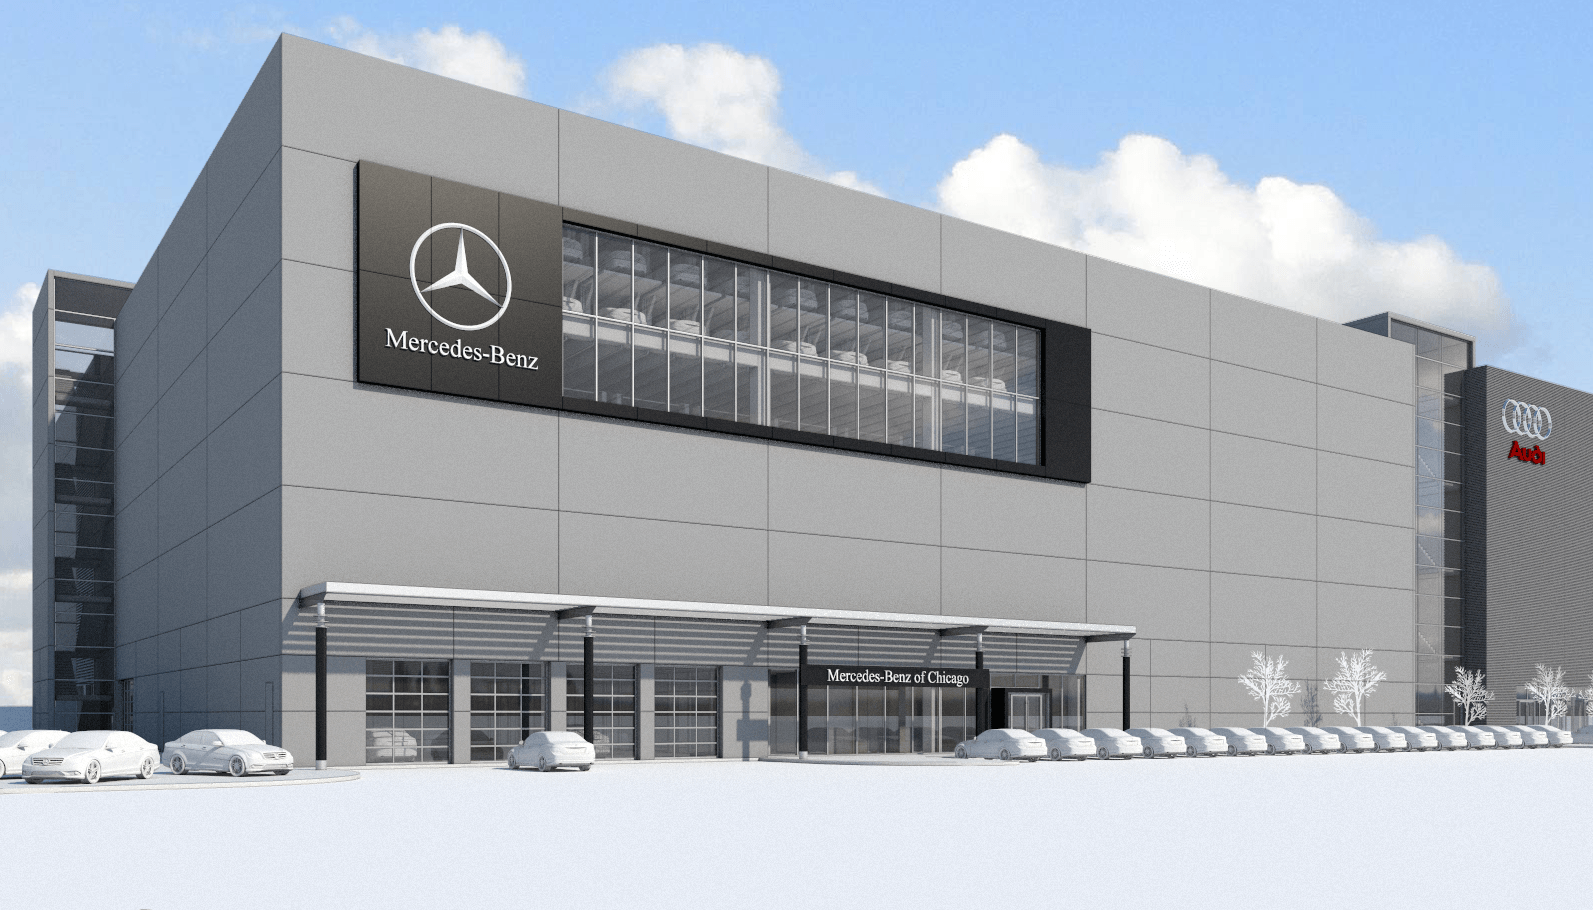 A new era of service mercedes benz of chicago for Mercedes benz parts chicago